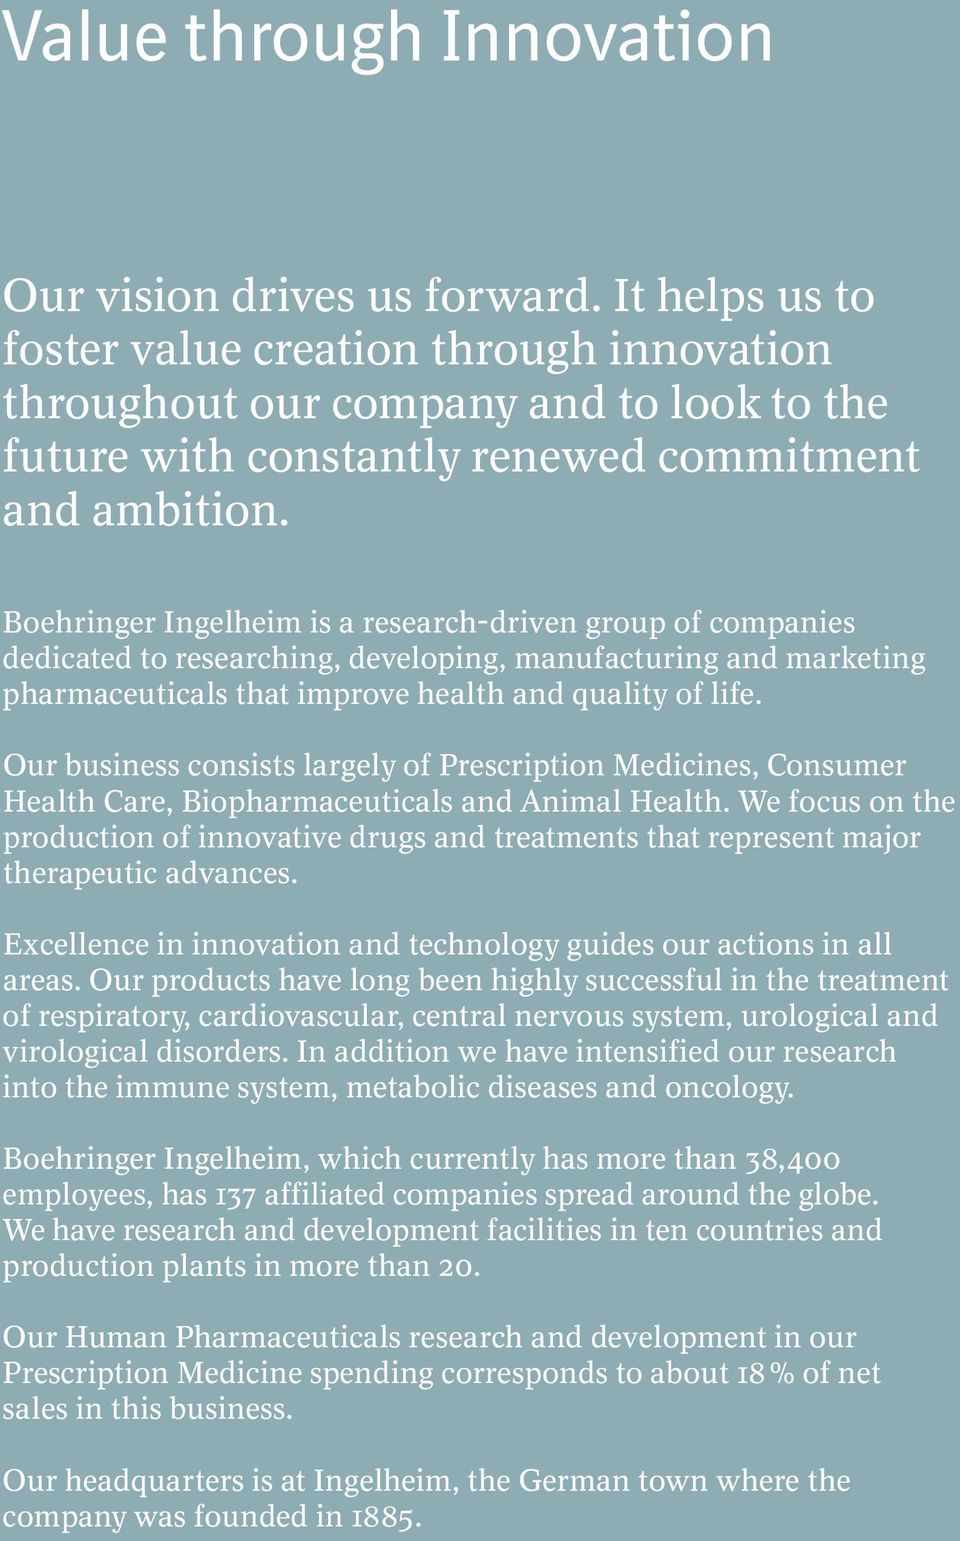 Boehringer Ingelheim is a research-driven group of companies dedicated to researching, developing, manufacturing and marketing pharmaceuticals that improve health and quality of life.